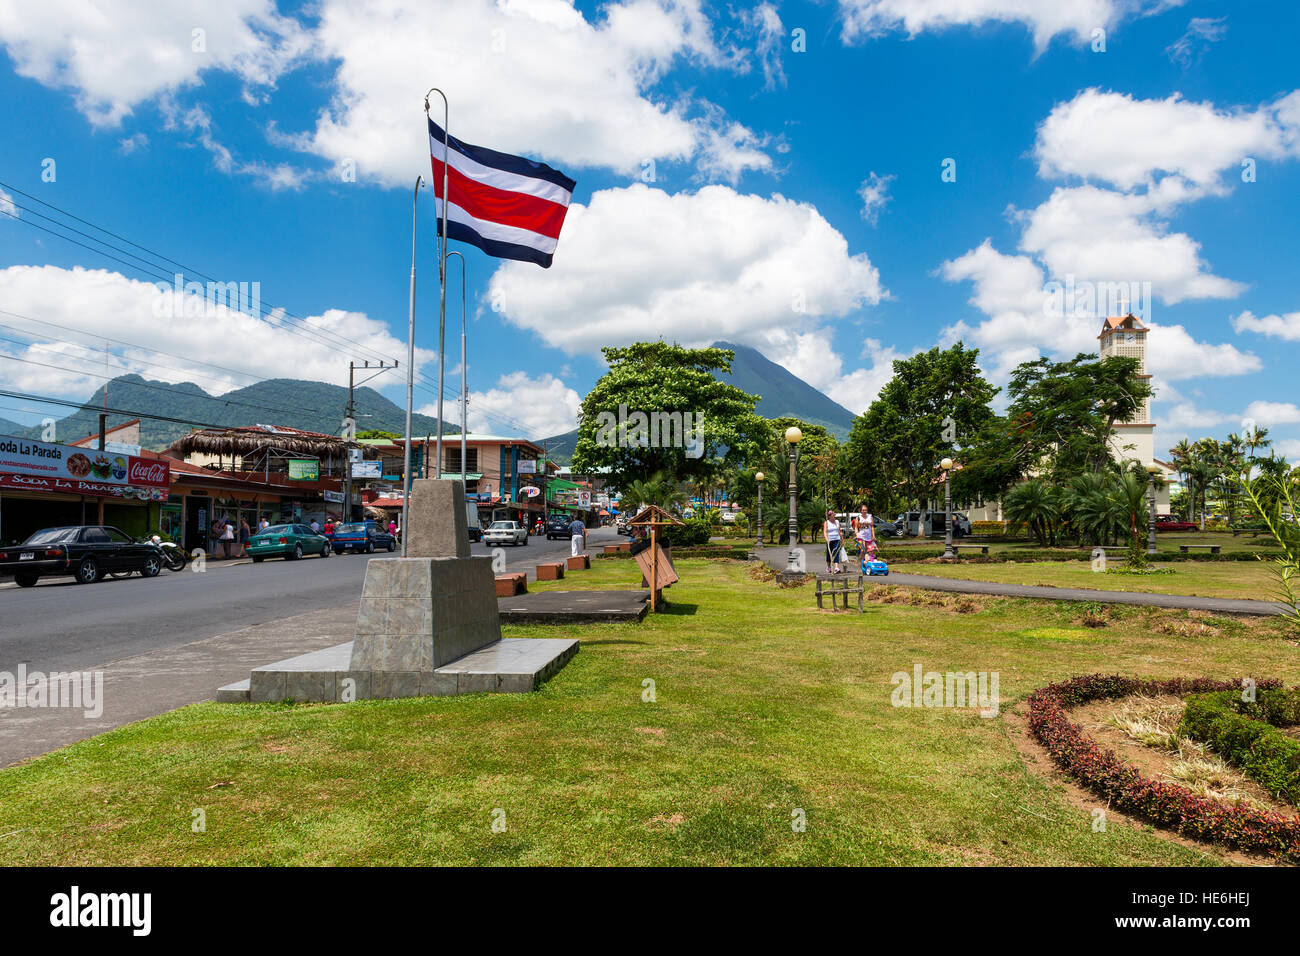 La Fortuna, Costa Rica - March 31, 2014: View of the town of La Fortuna in Costa Rica with the Arenal Volcano on - Stock Image